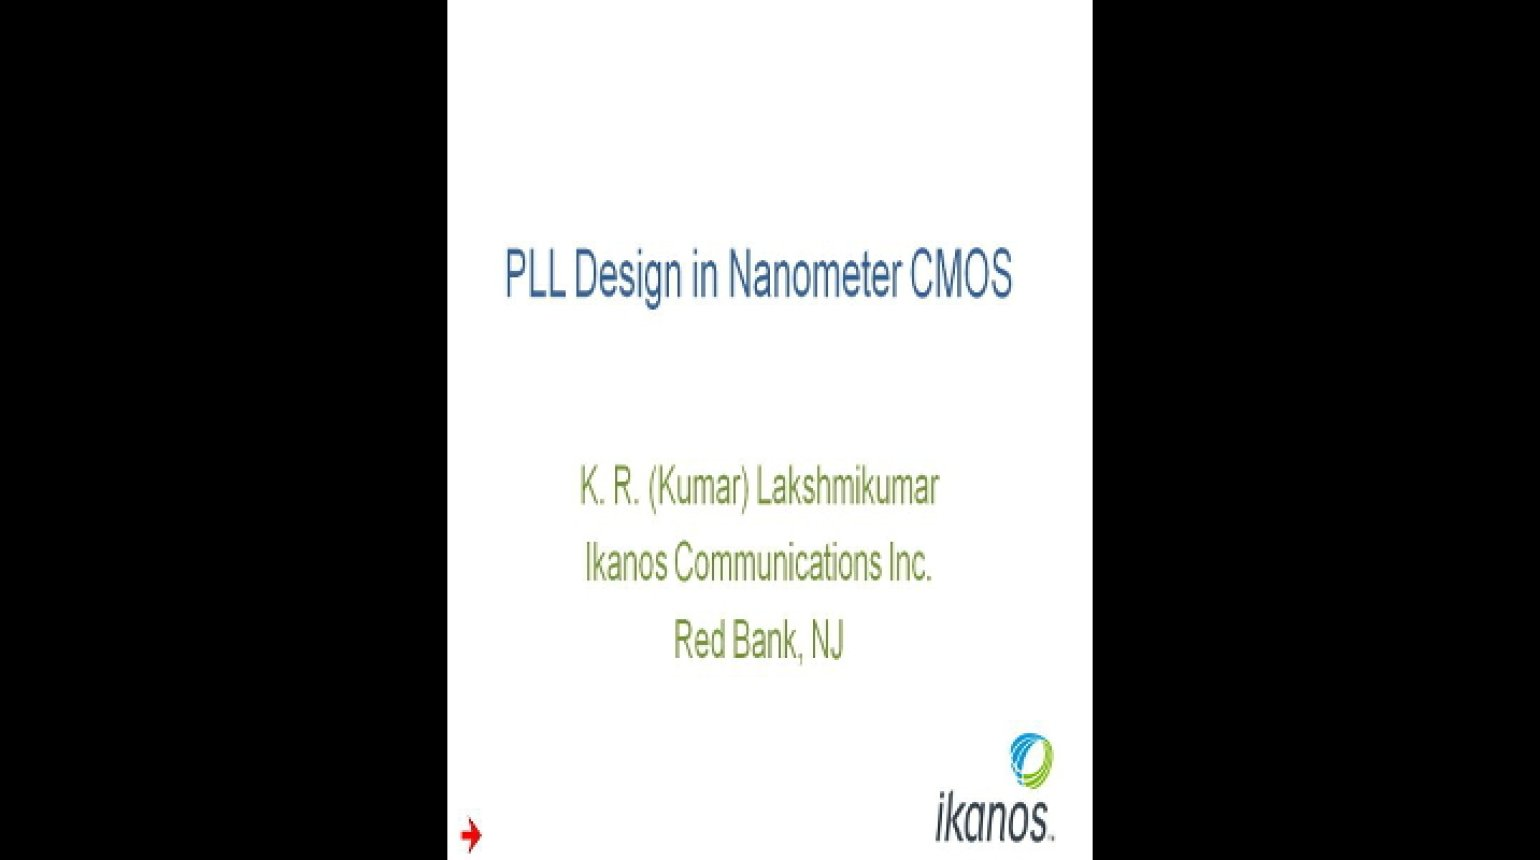 PLL Design in Nanometer CMOS Video